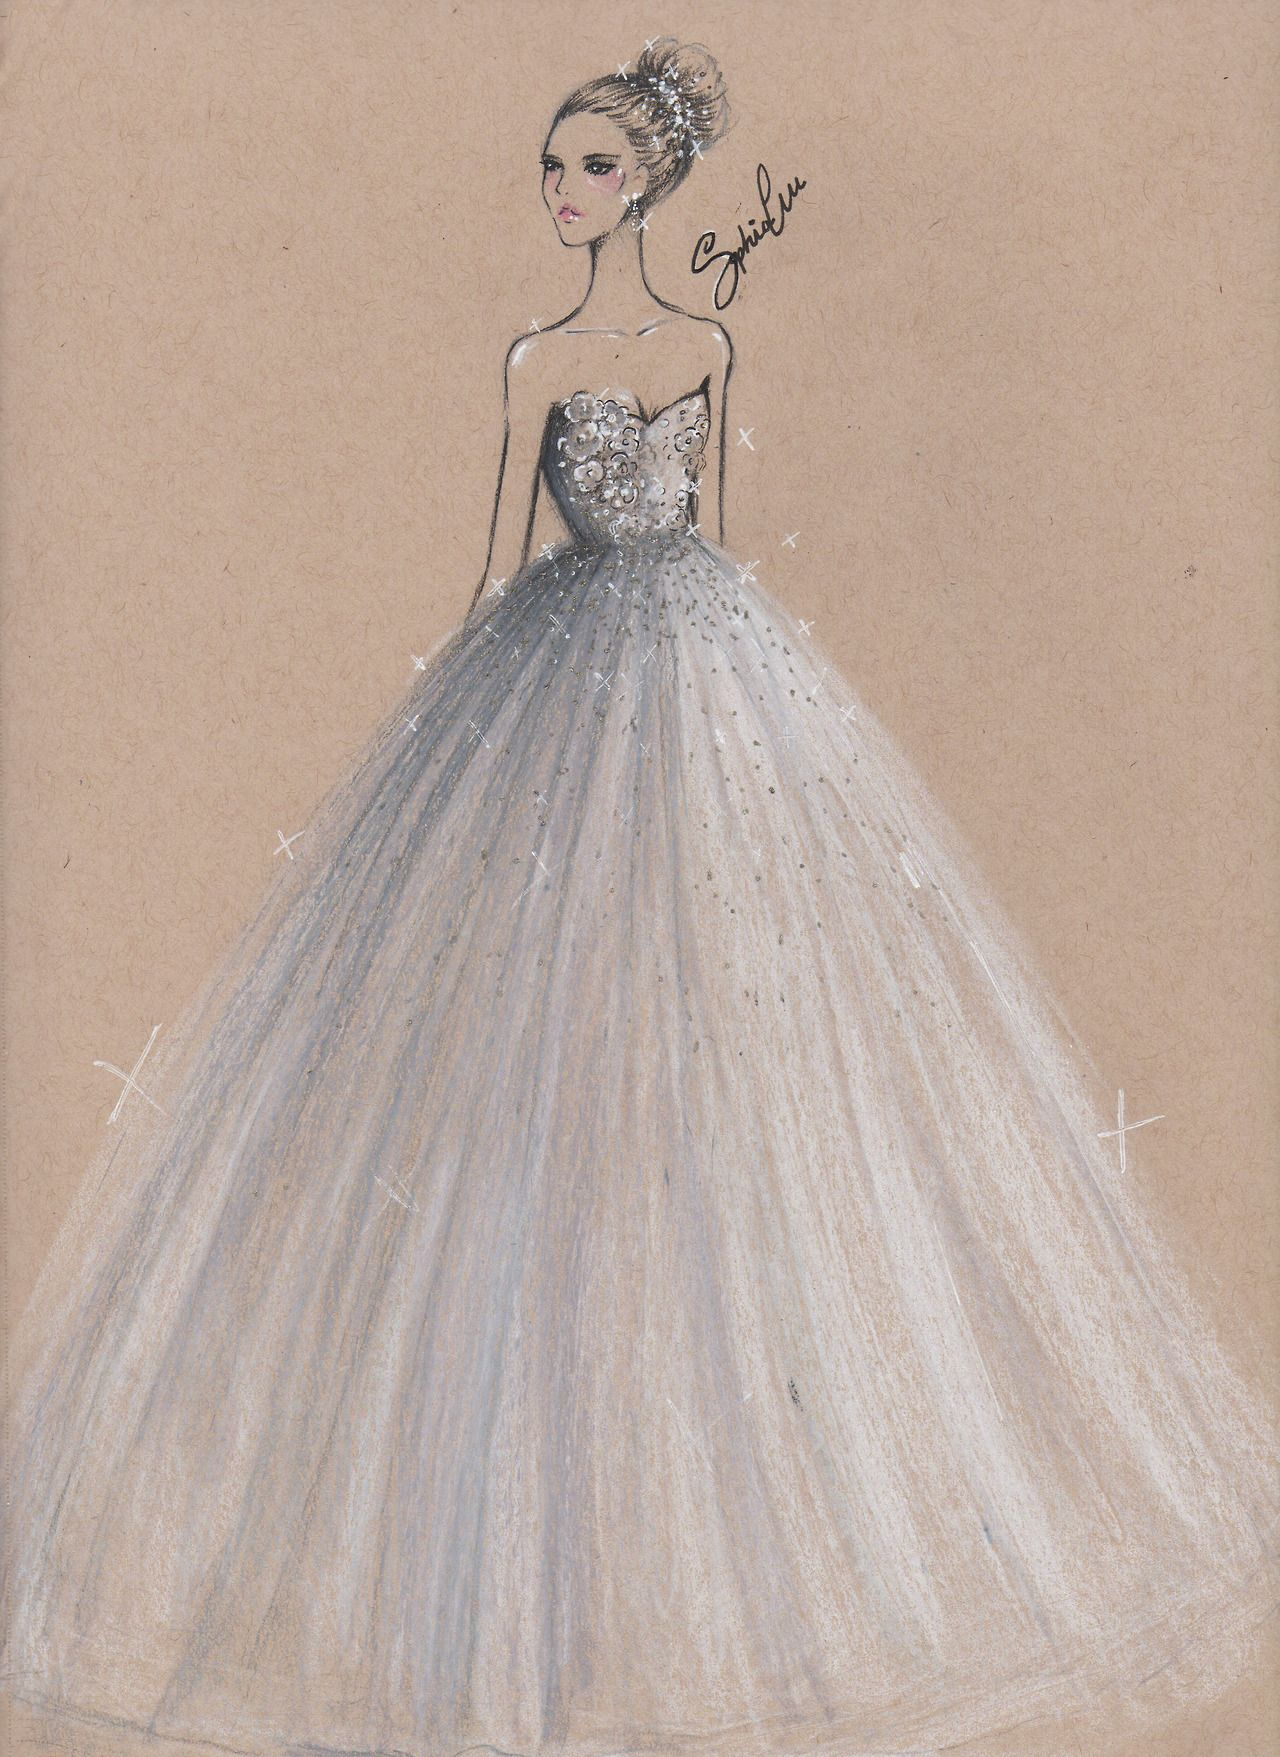 Pin by ladie s on ua piece of a masteru pinterest fary tale